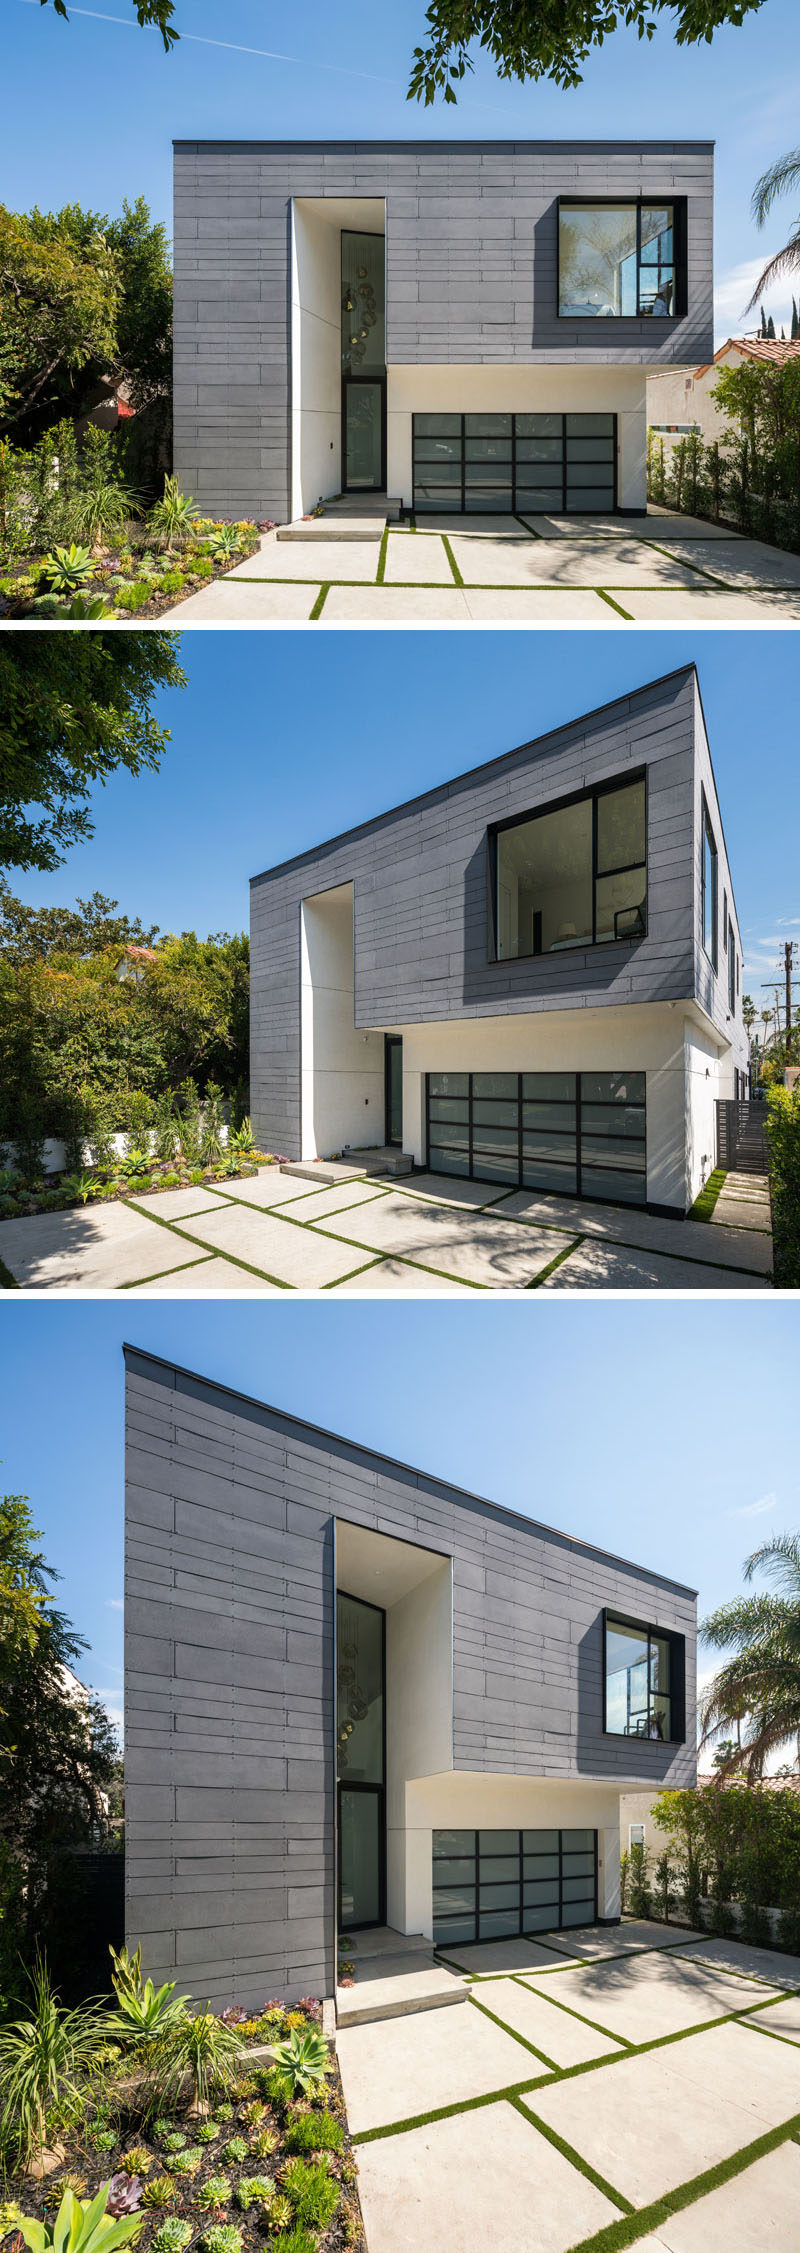 The exterior of this modern house has white stucco paired with gray Equitone fiber cement board panels to create a dramatic and eye-catching appearance on the street.